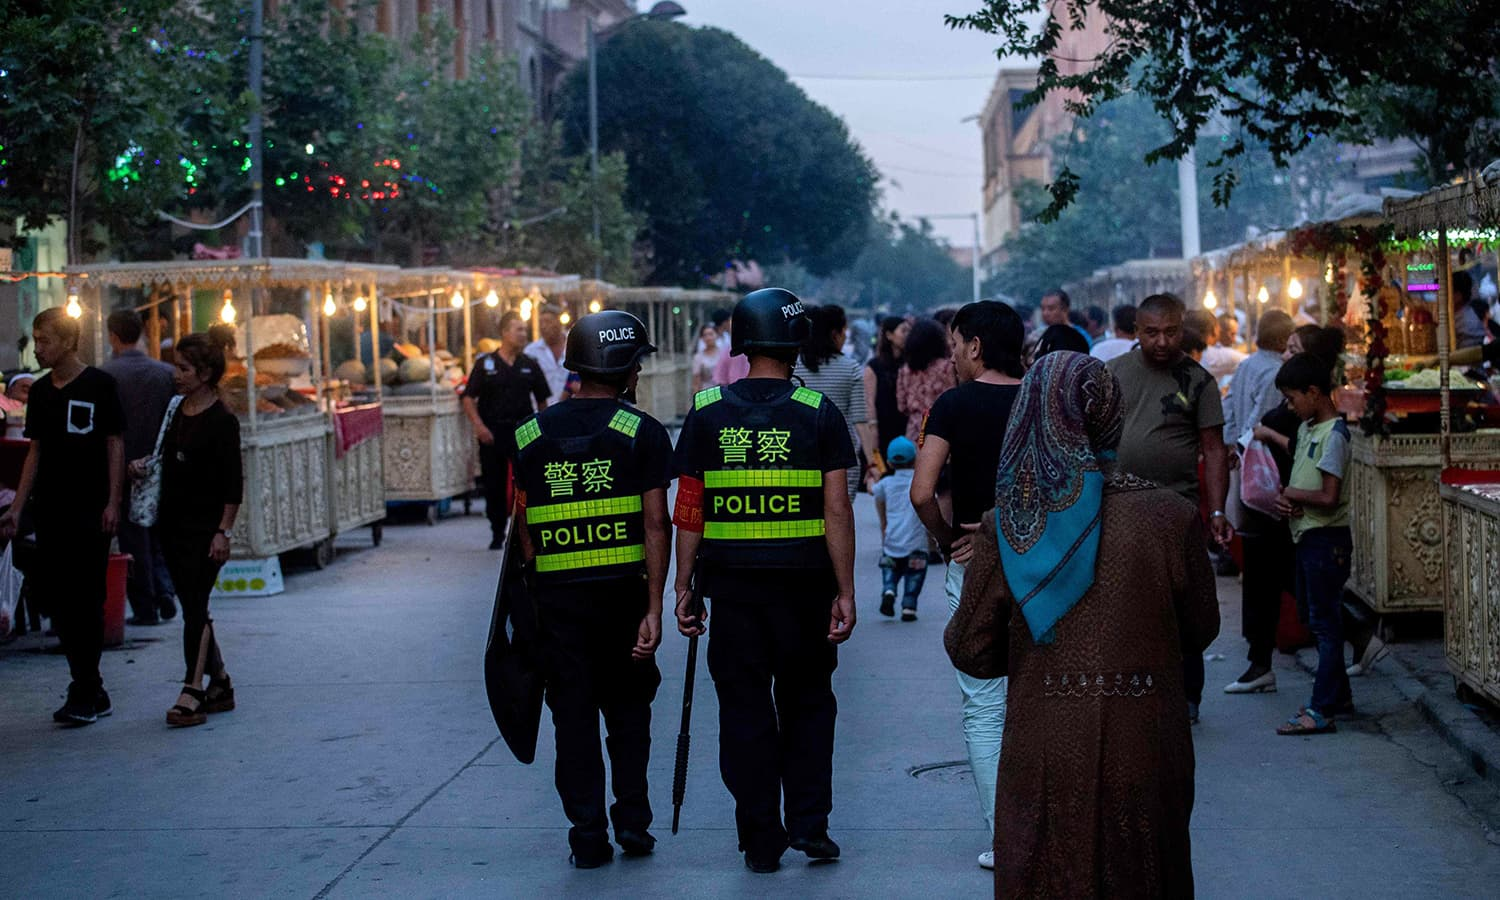 Police patrol in a night food market near the Id Kah Mosque in Kashgar in China's Xinjiang region, a day before the Eidul Fitr holiday. — AFP